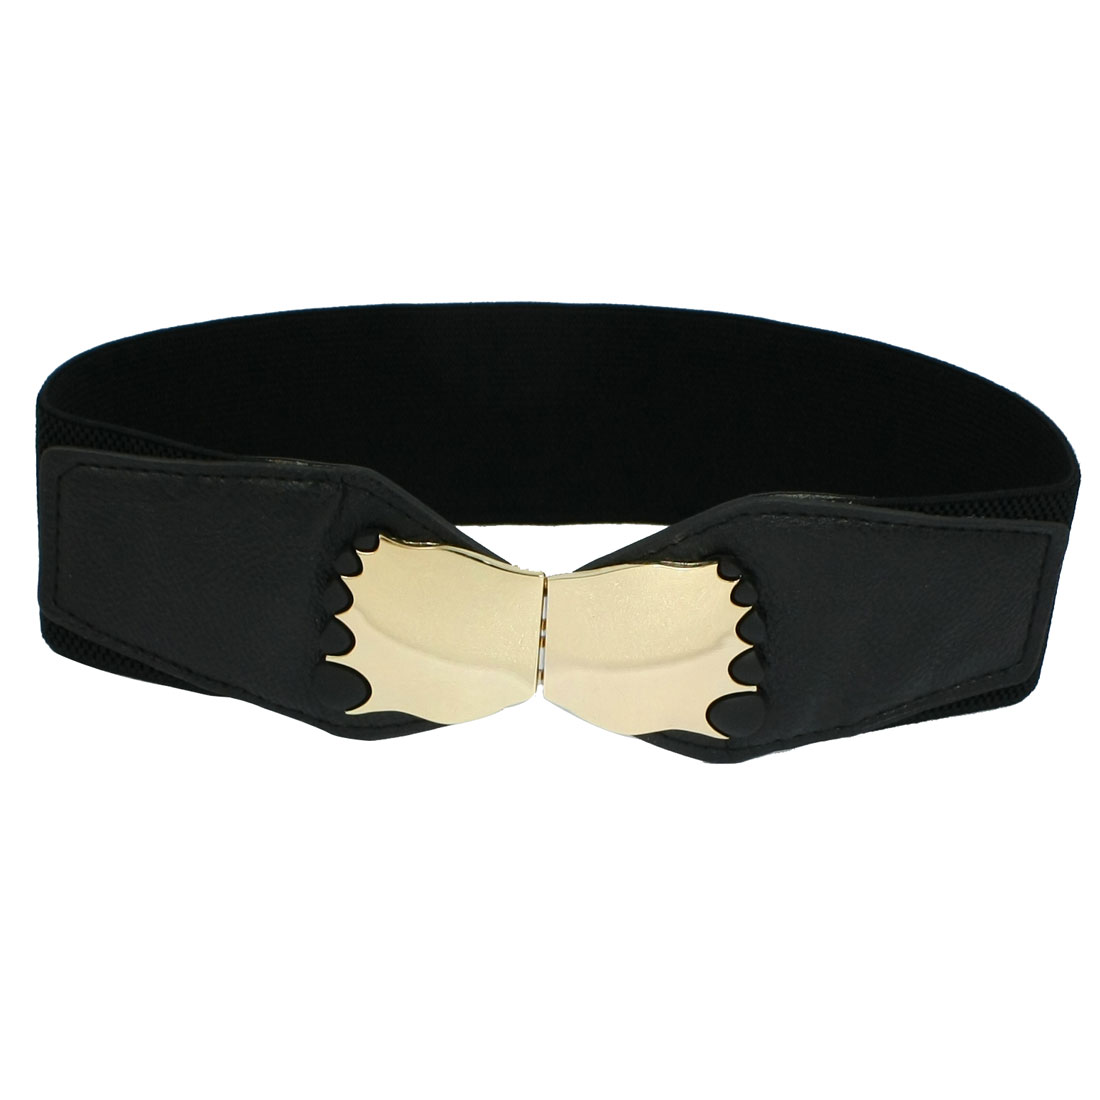 Women Sliver Tone Metal Feet Shaped Buckle Black Elastic Cinch Belt